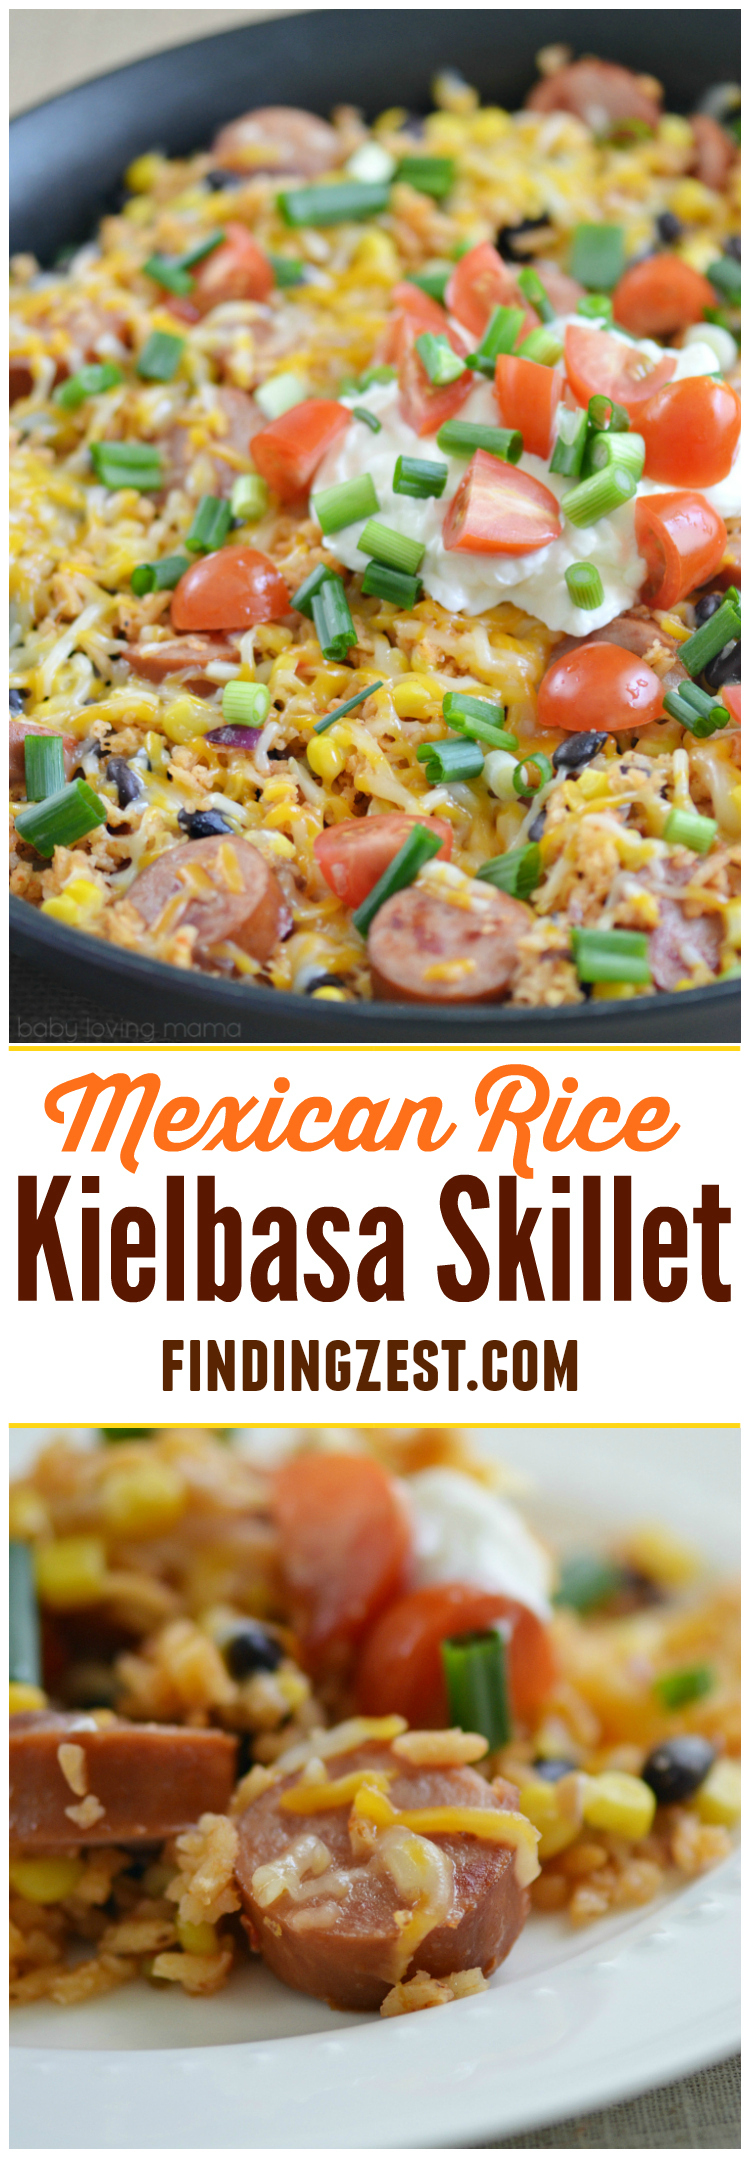 Shake things up at dinner with this easy Mexican Rice Kielbasa Skillet! This one-dish meal makes cooking and cleanup a breeze on busy weeknights.